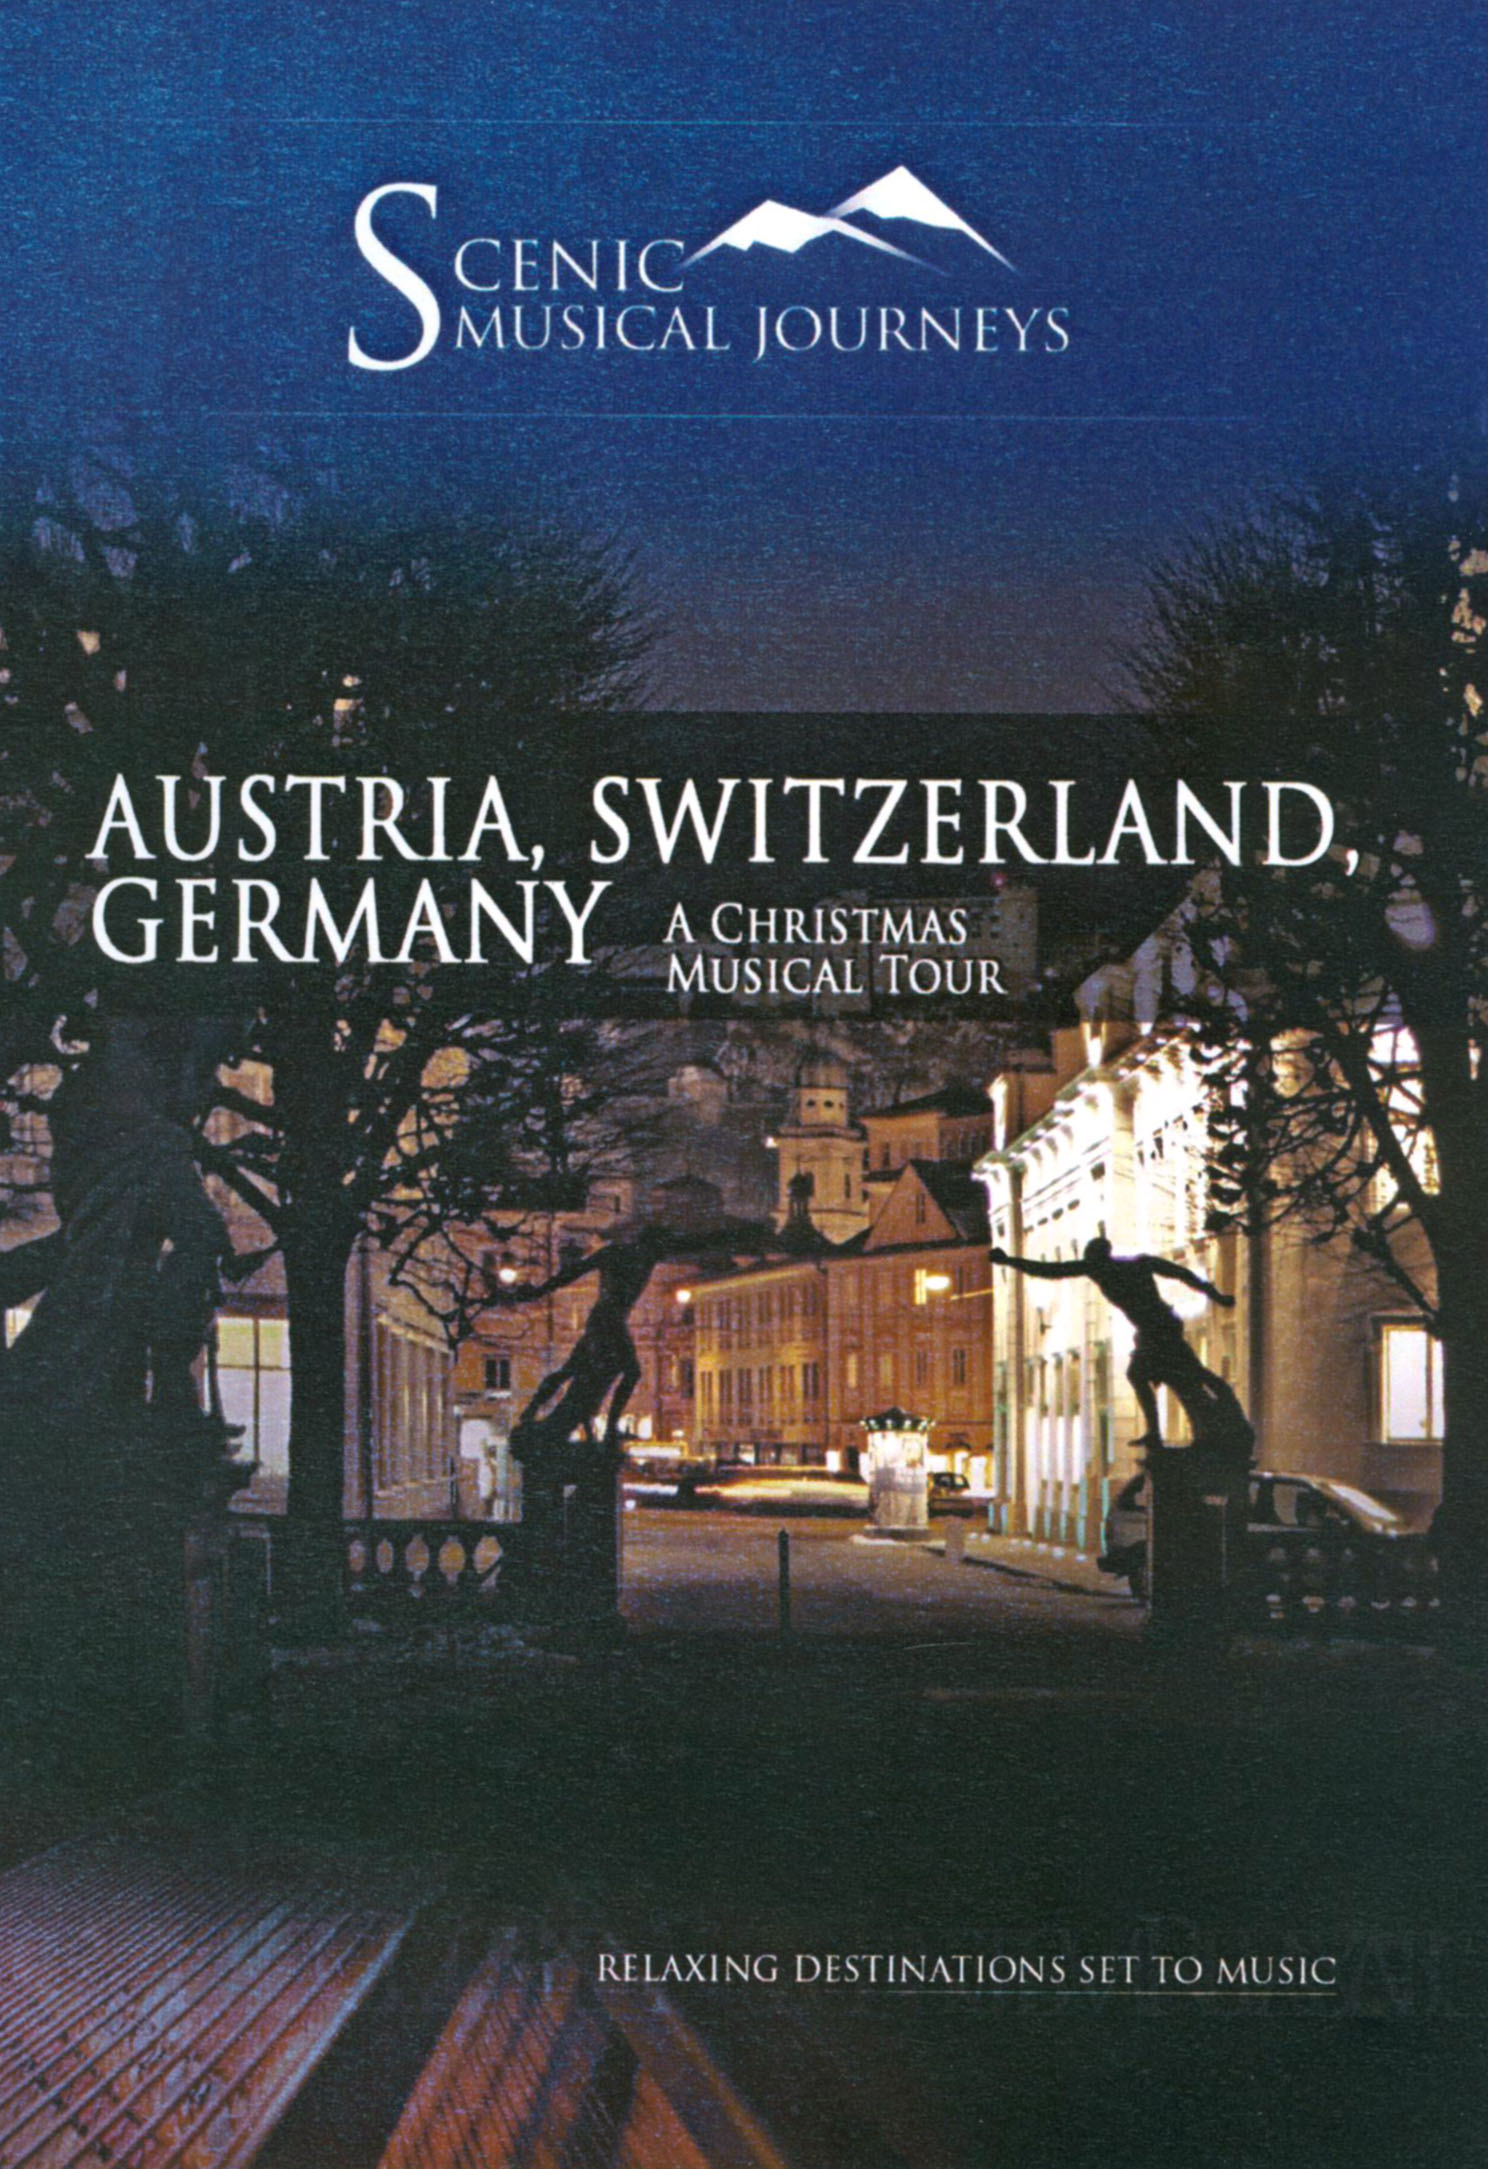 Scenic Musical Journeys: Austria, Switzerland, Germany - A Christmas Musical Tour